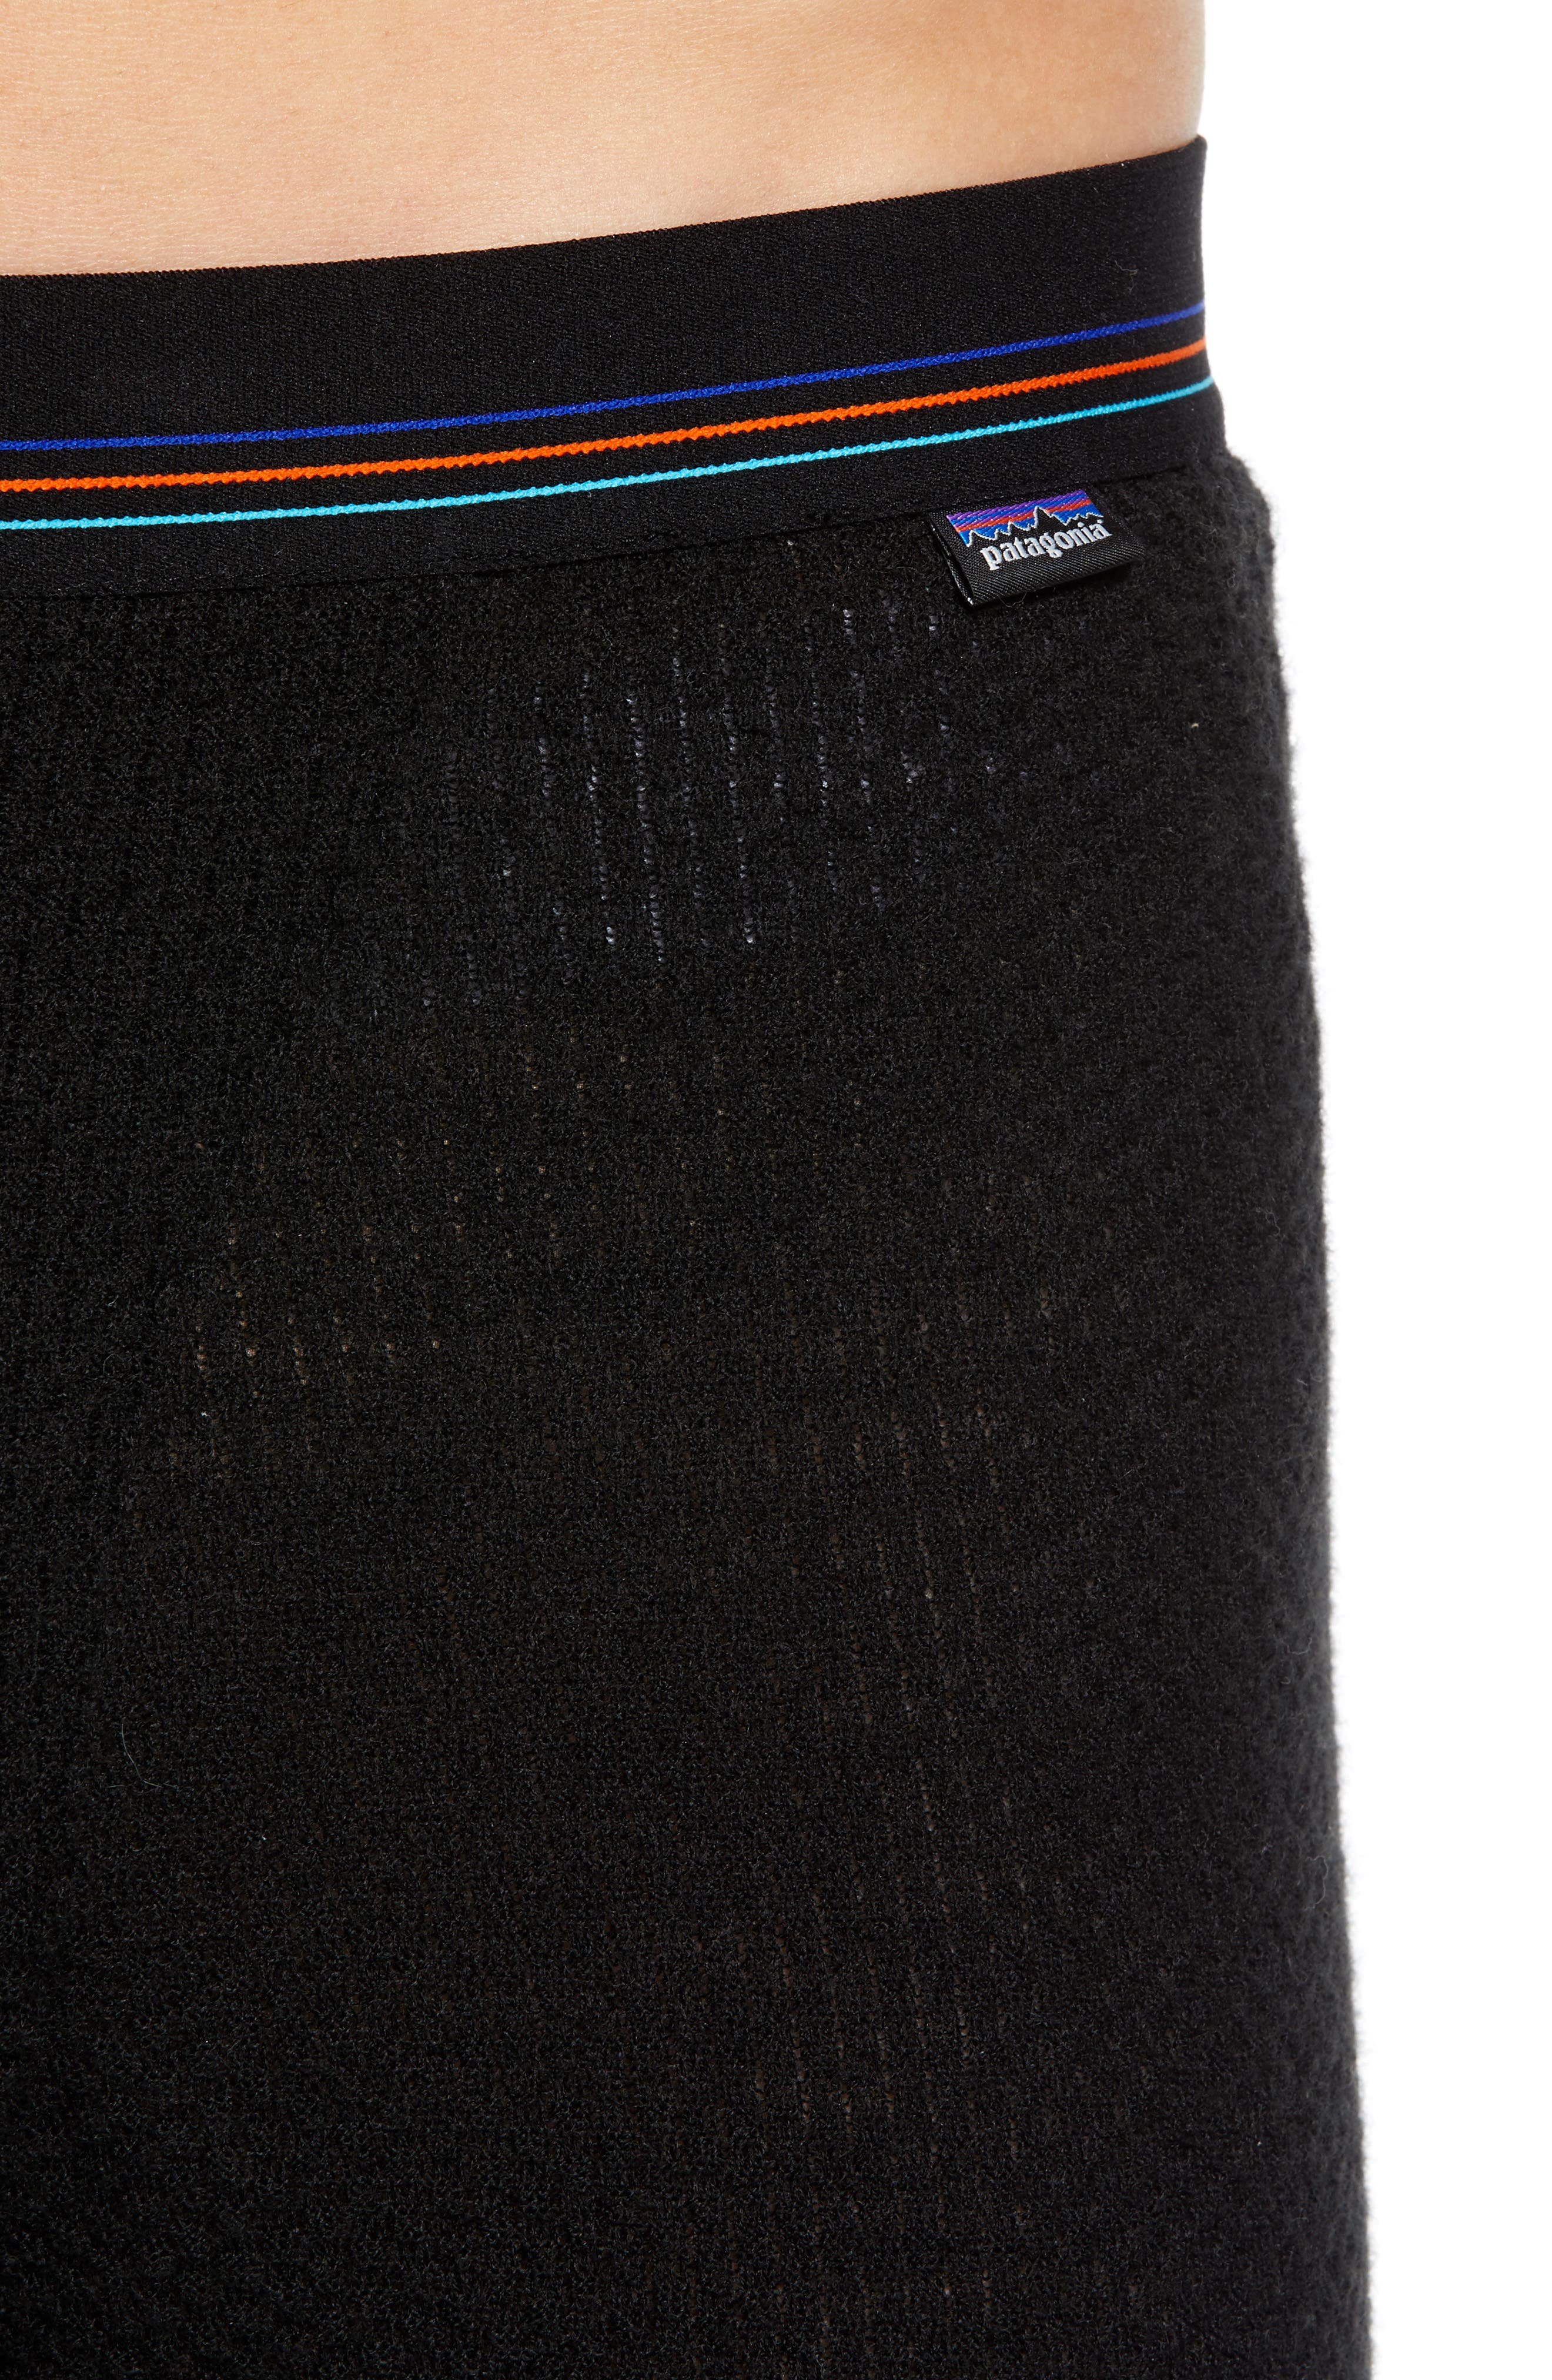 Capilene<sup>®</sup> Thermal Weight Base Layer Pants,                             Alternate thumbnail 4, color,                             BLACK